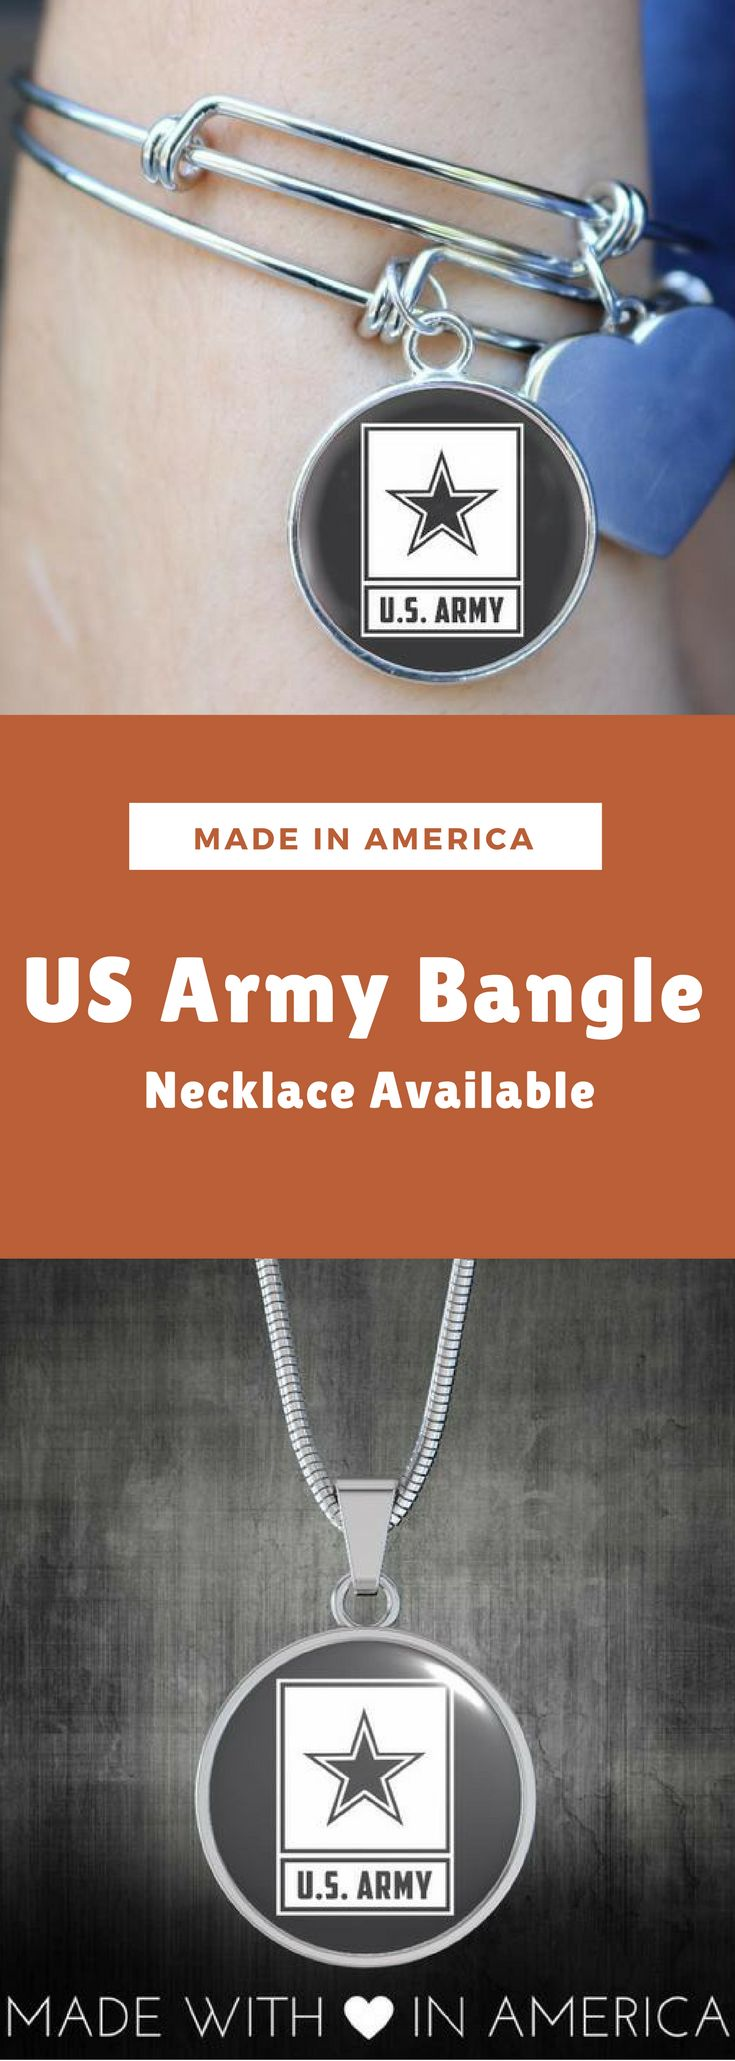 US Army Bangle - Necklace